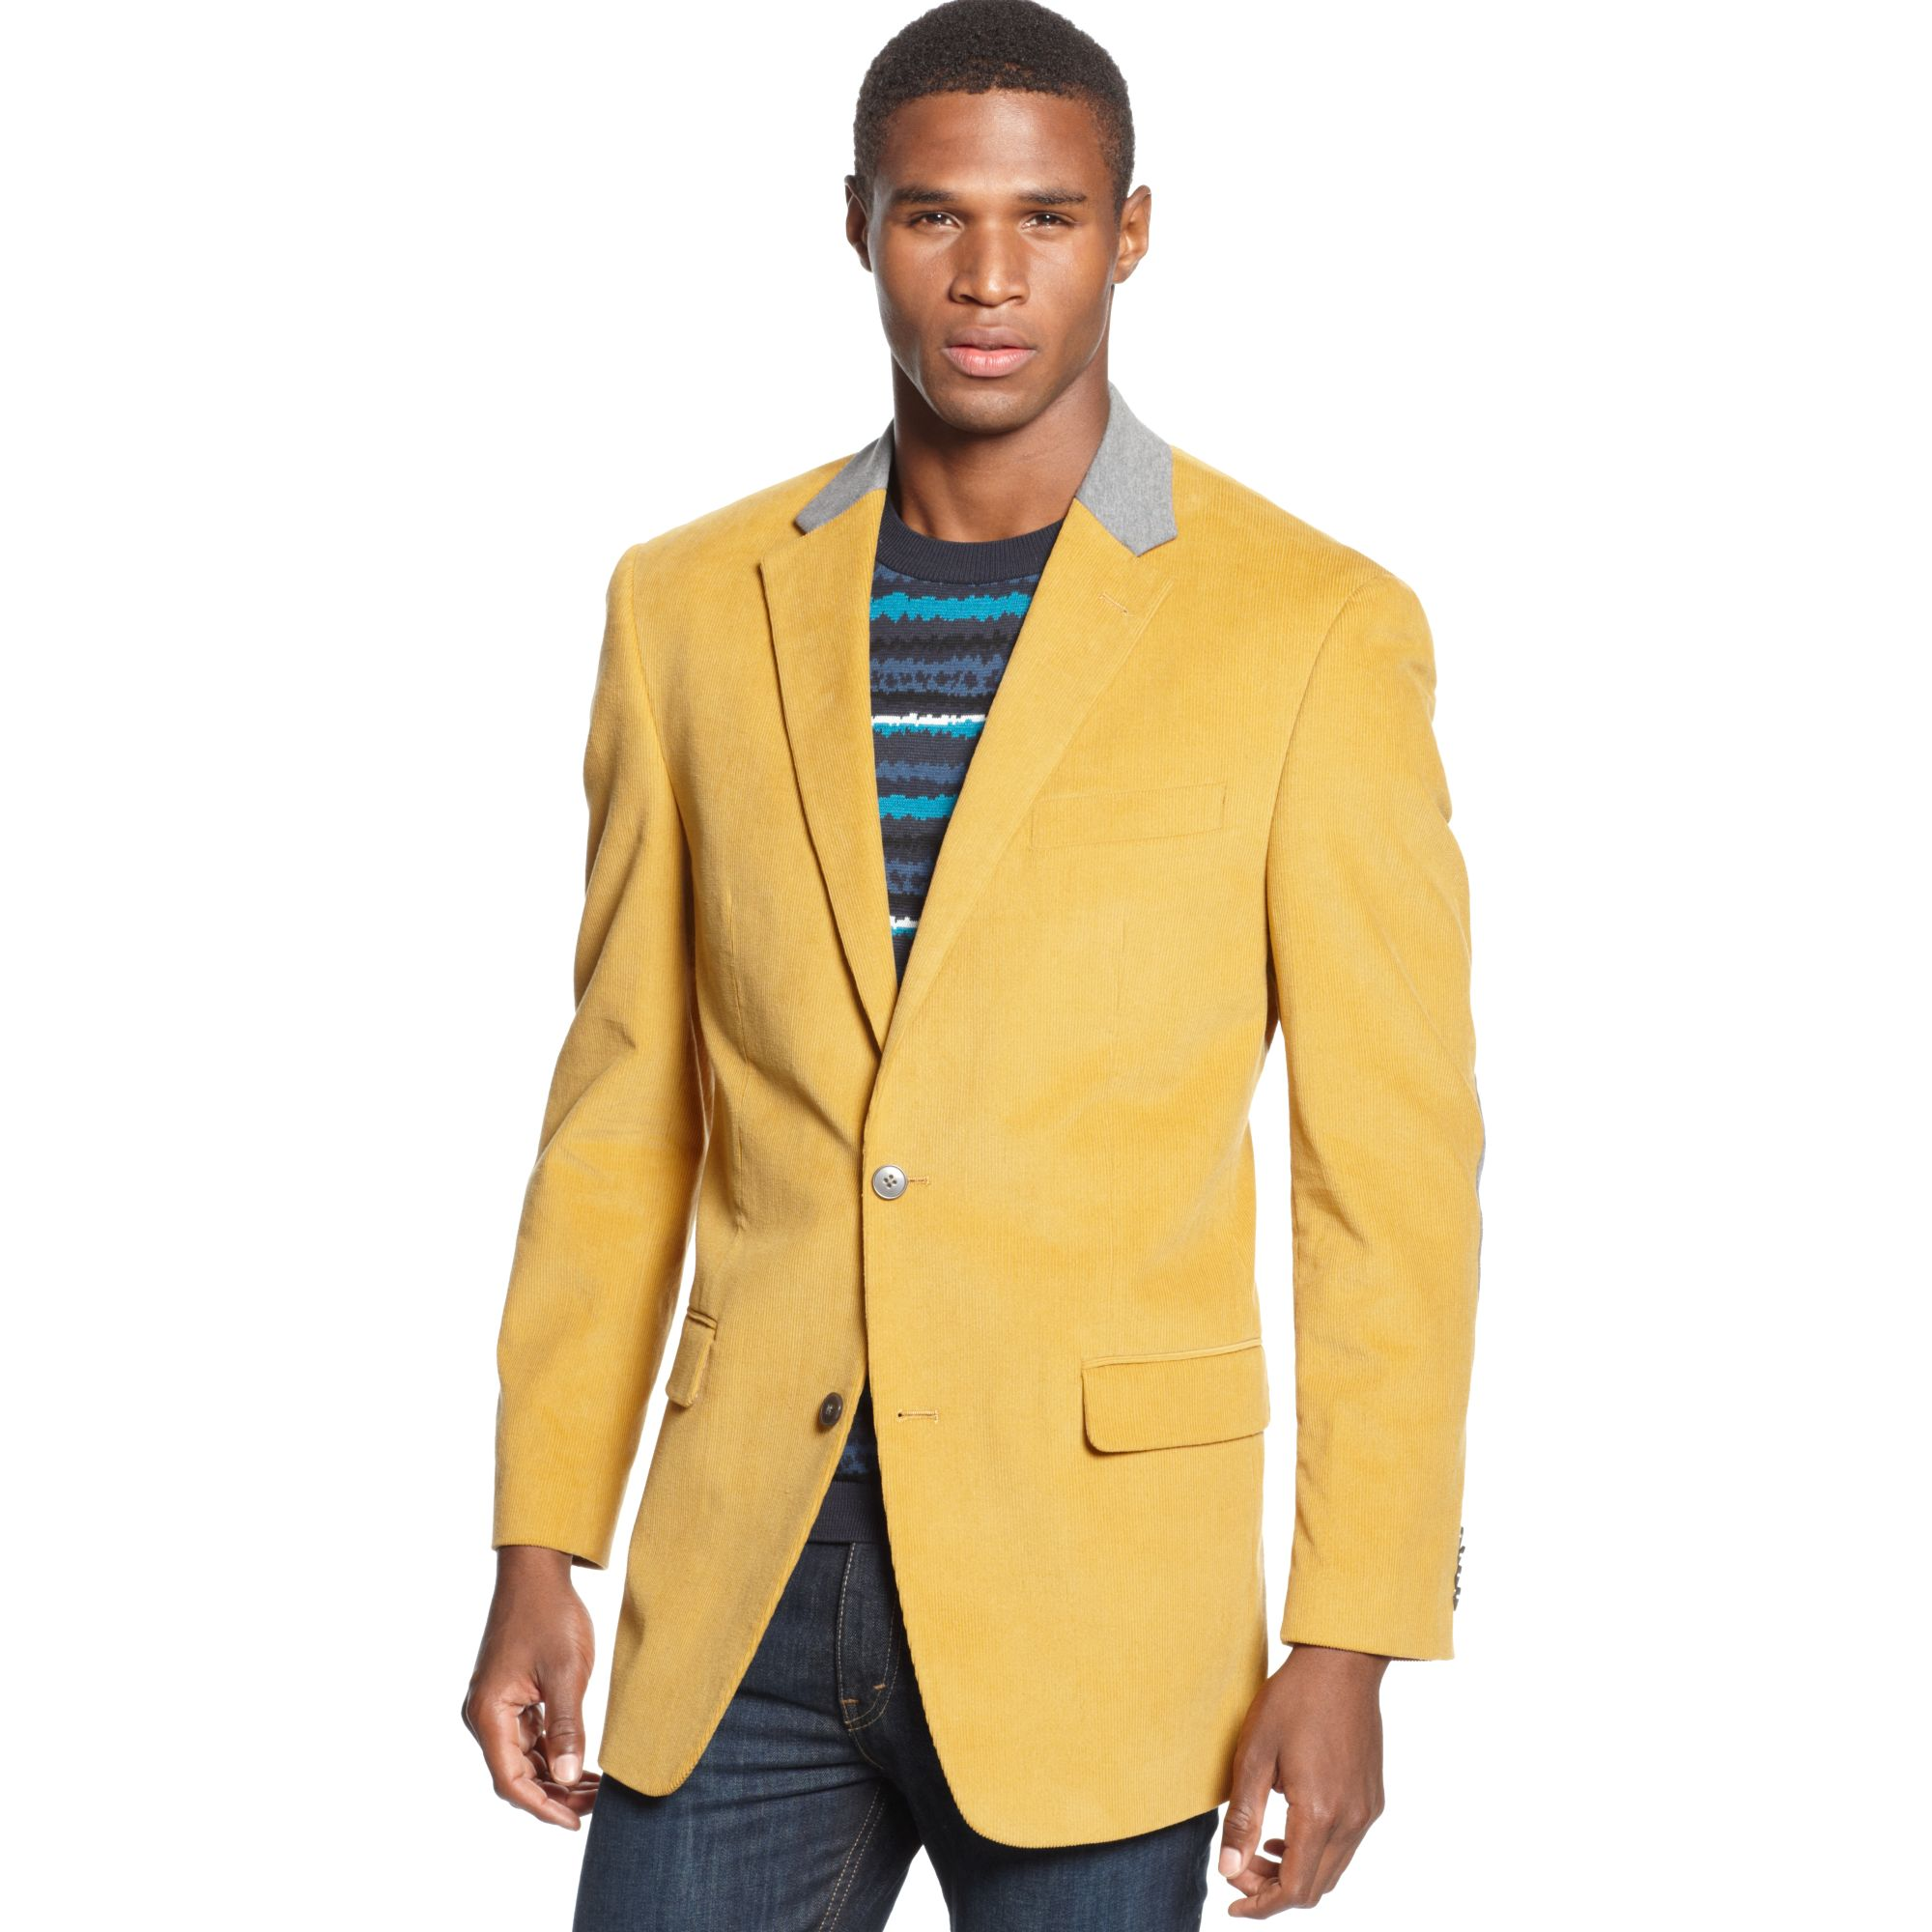 Sean john Solid Corduroy with Elbow Patches Sportcoat in Yellow